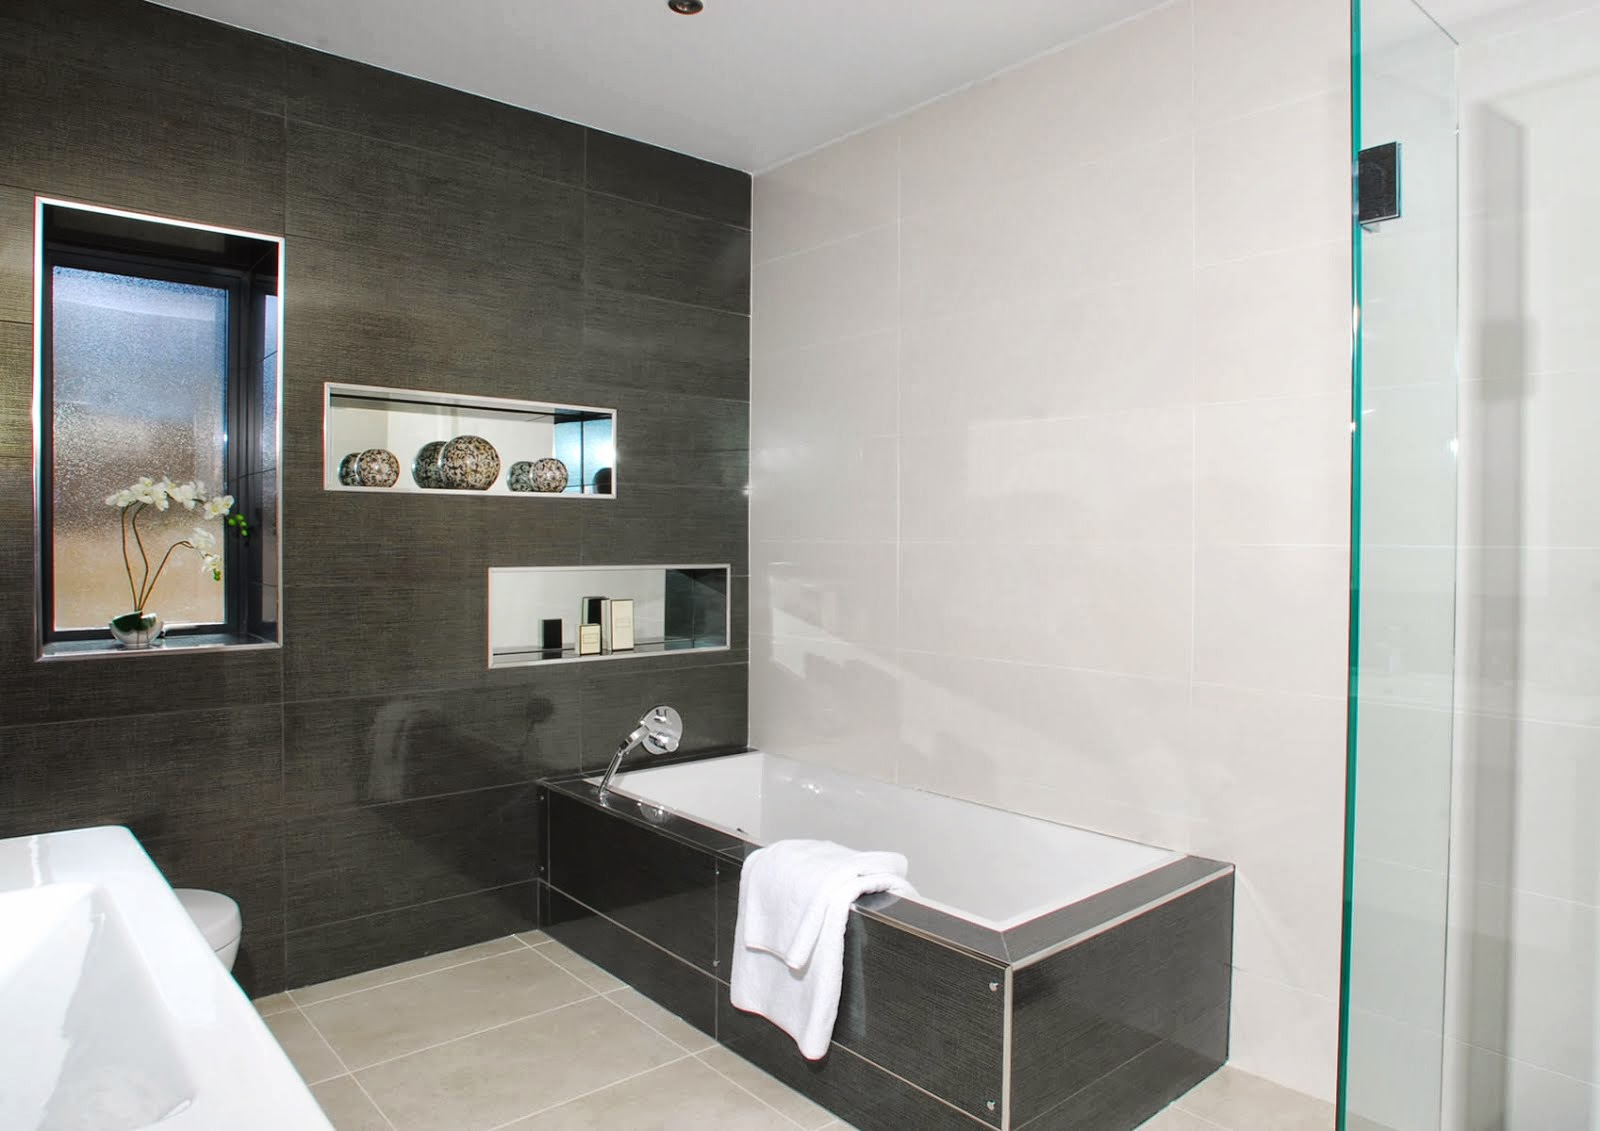 Bathroom design ideas uk for Restroom ideas